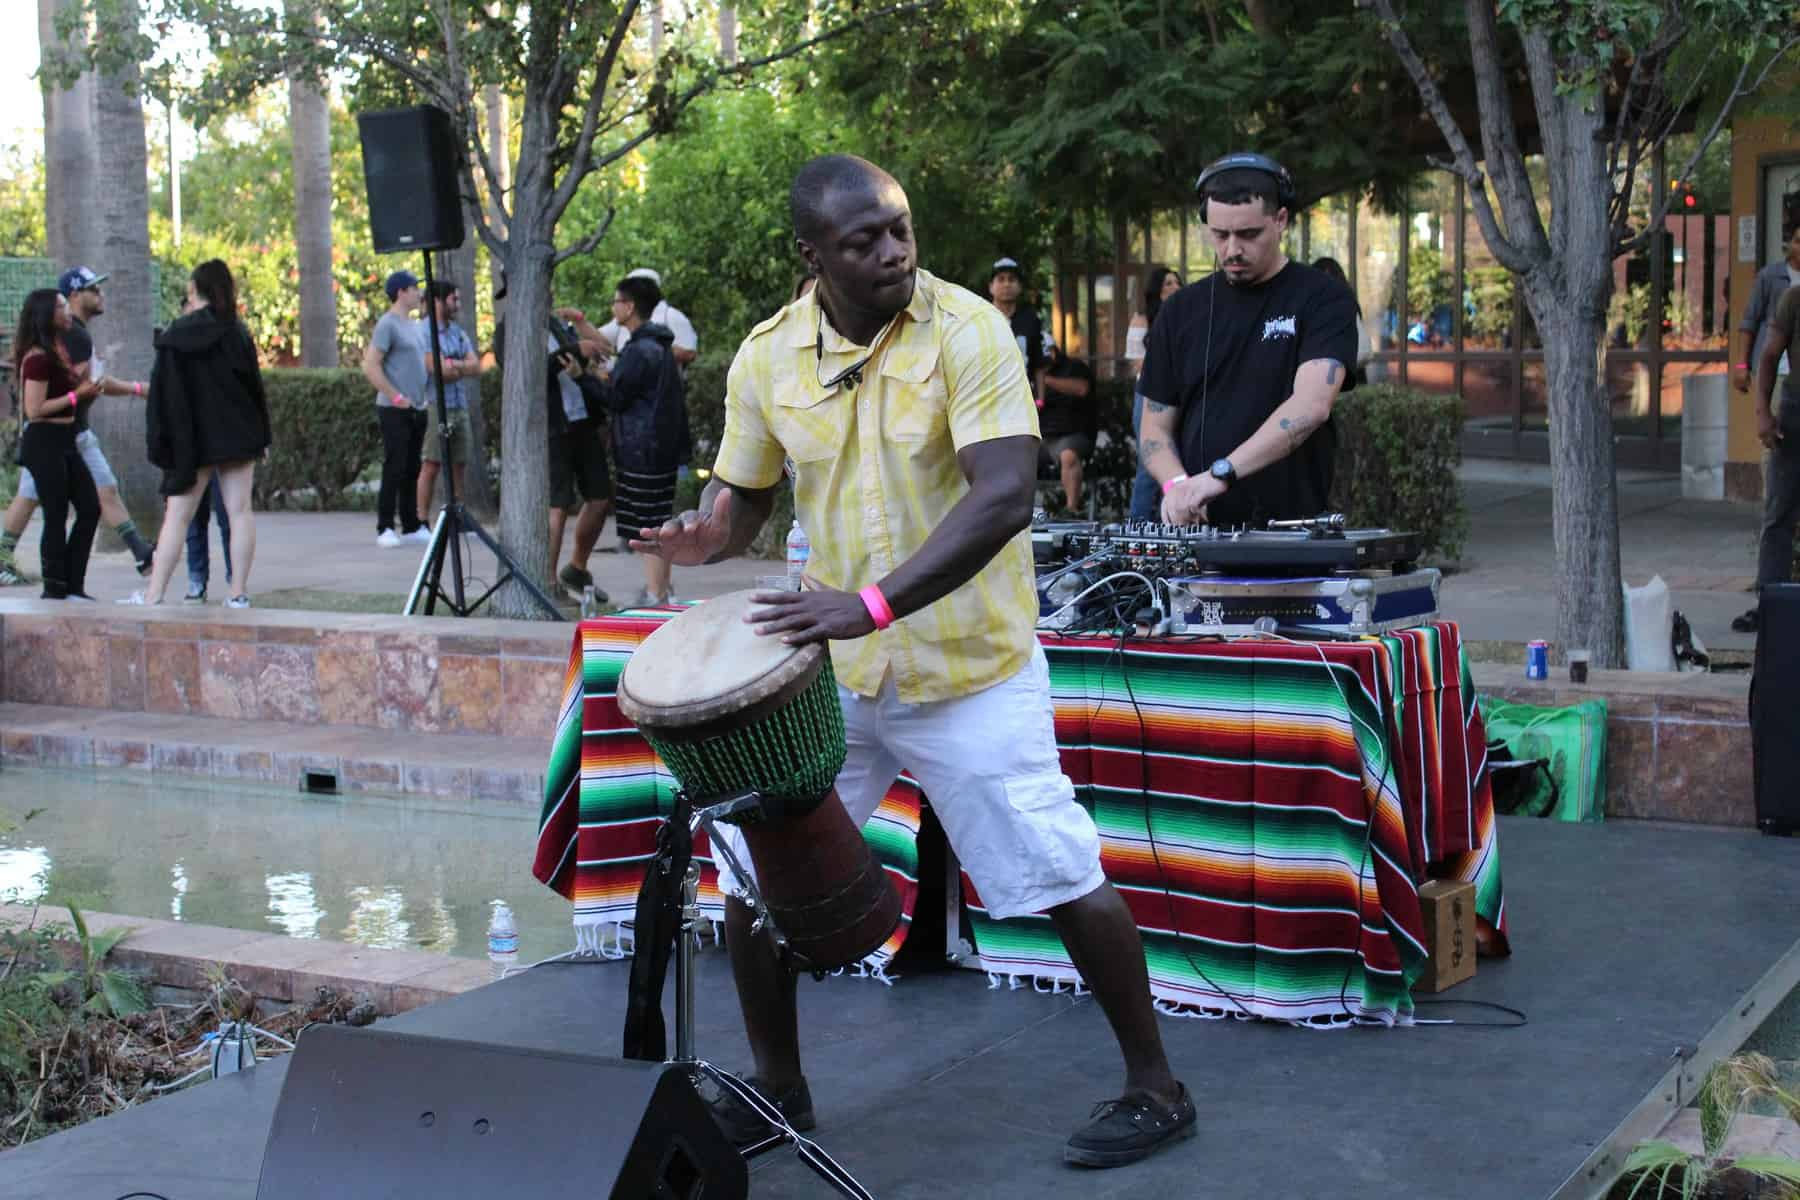 Man In Yellow Shirt Playing Drum With Hands